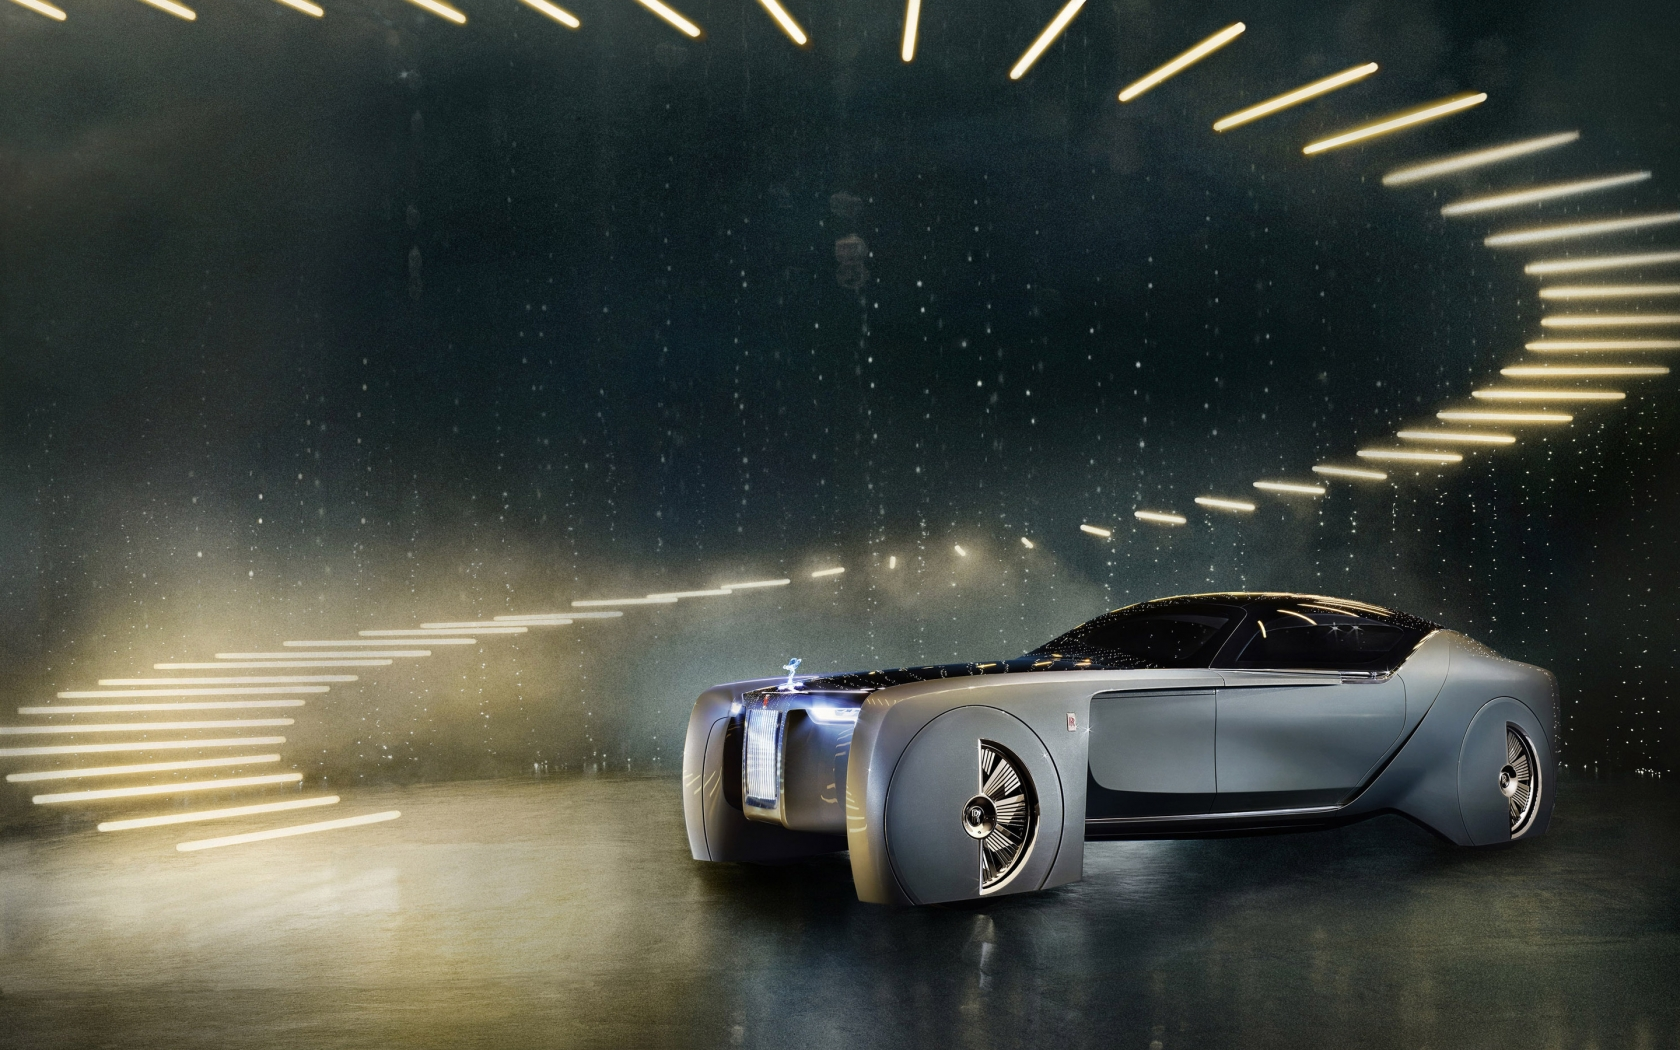 Rolls-Royce Concept Car 2016 for 1680 x 1050 widescreen resolution